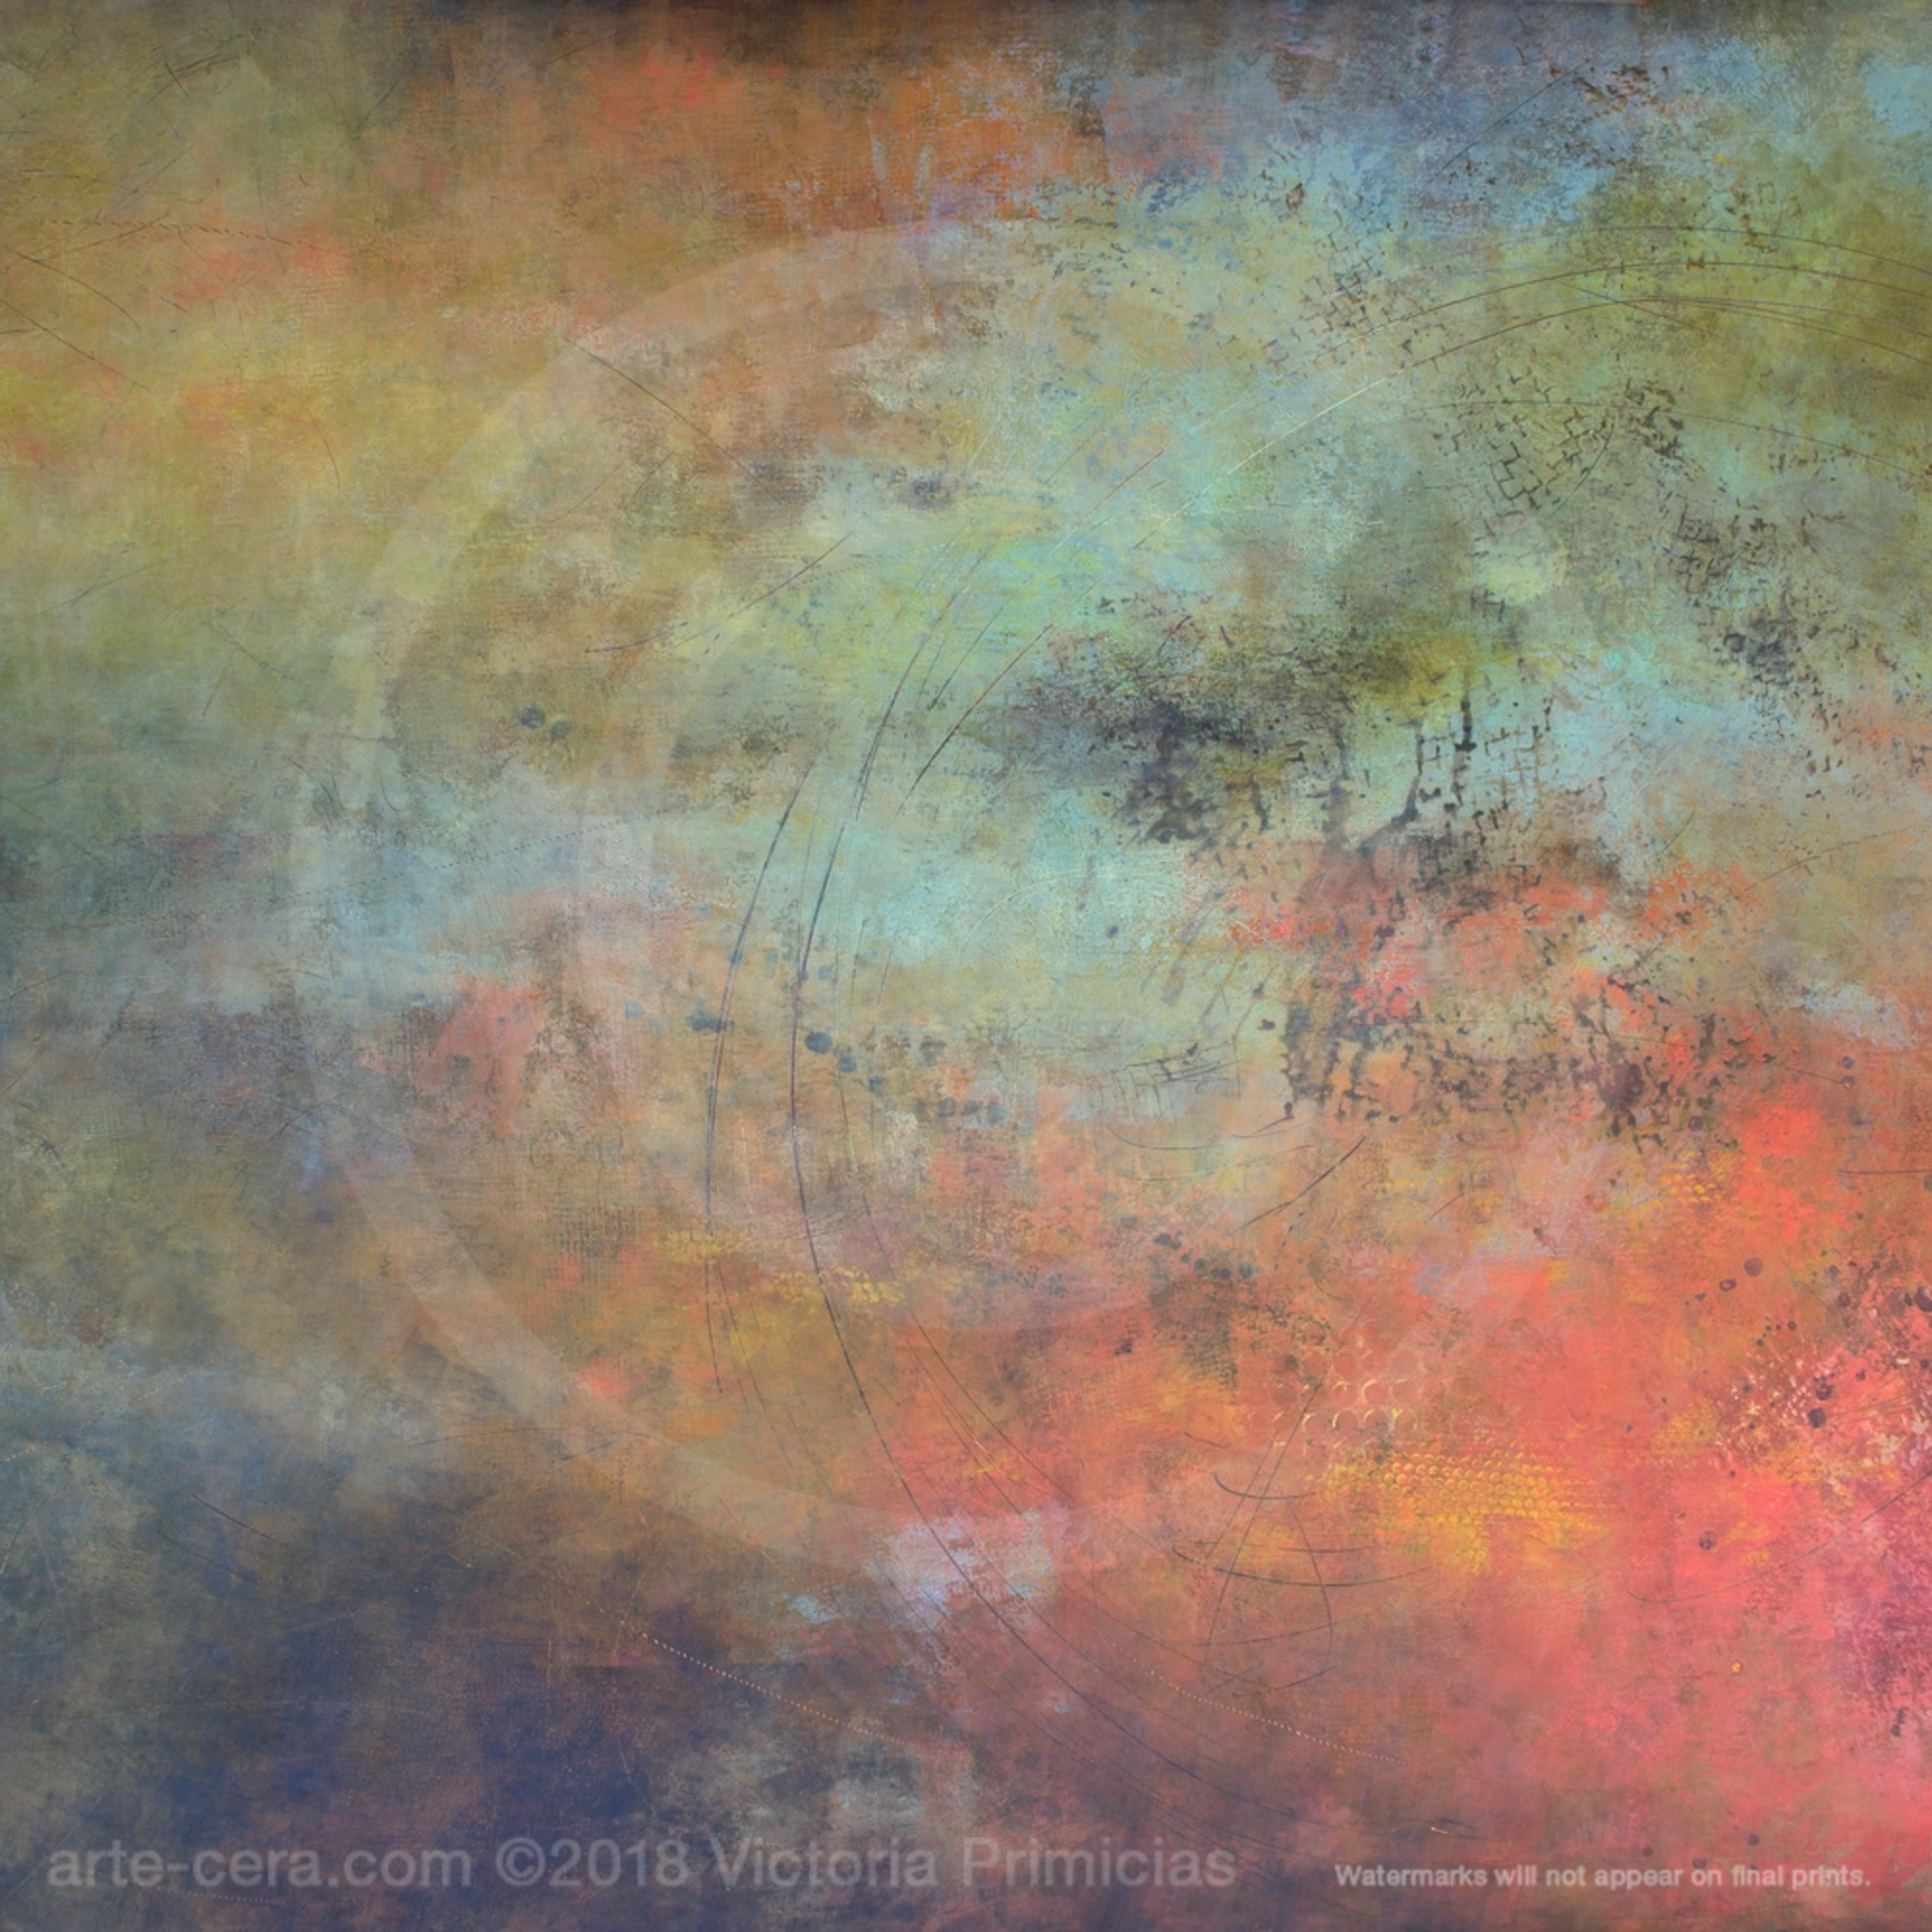 Abstract art images round rapport ivtvlh